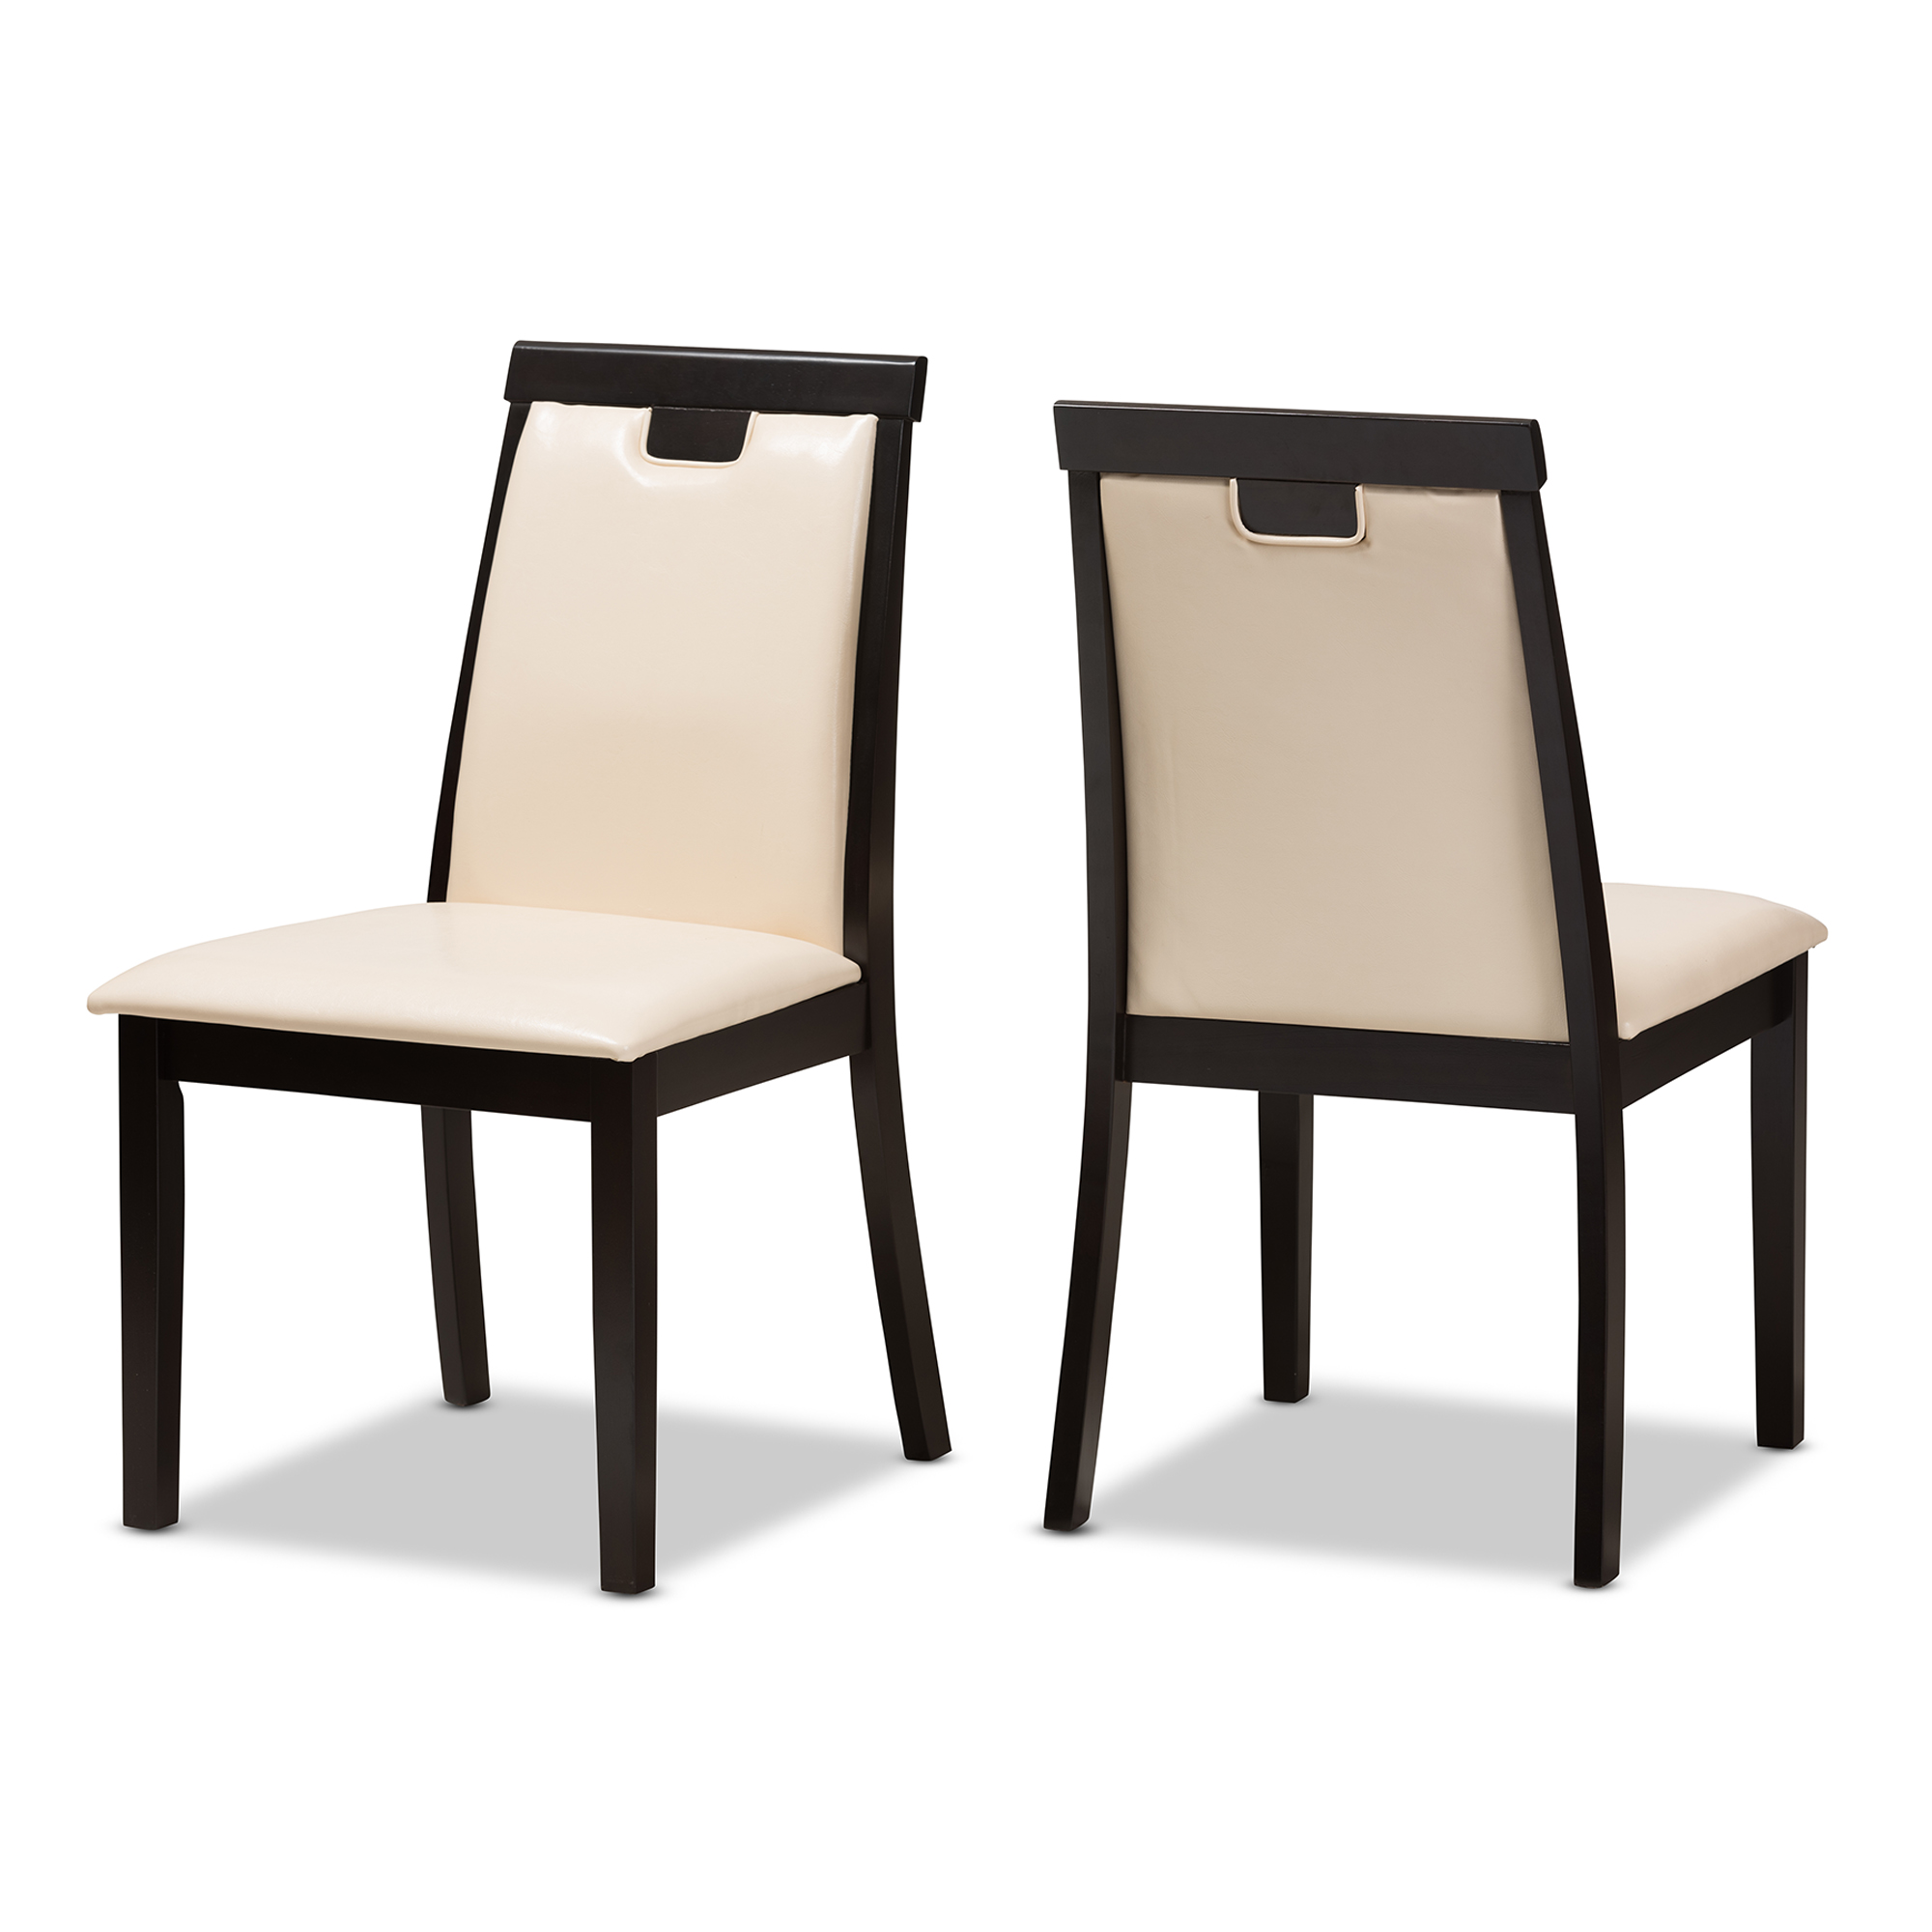 Beige Leather Dining Chairs Baxton Studio Evelyn Modern And Contemporary Beige Faux Leather Upholstered And Dark Brown Finished Dining Chair Set Of 2